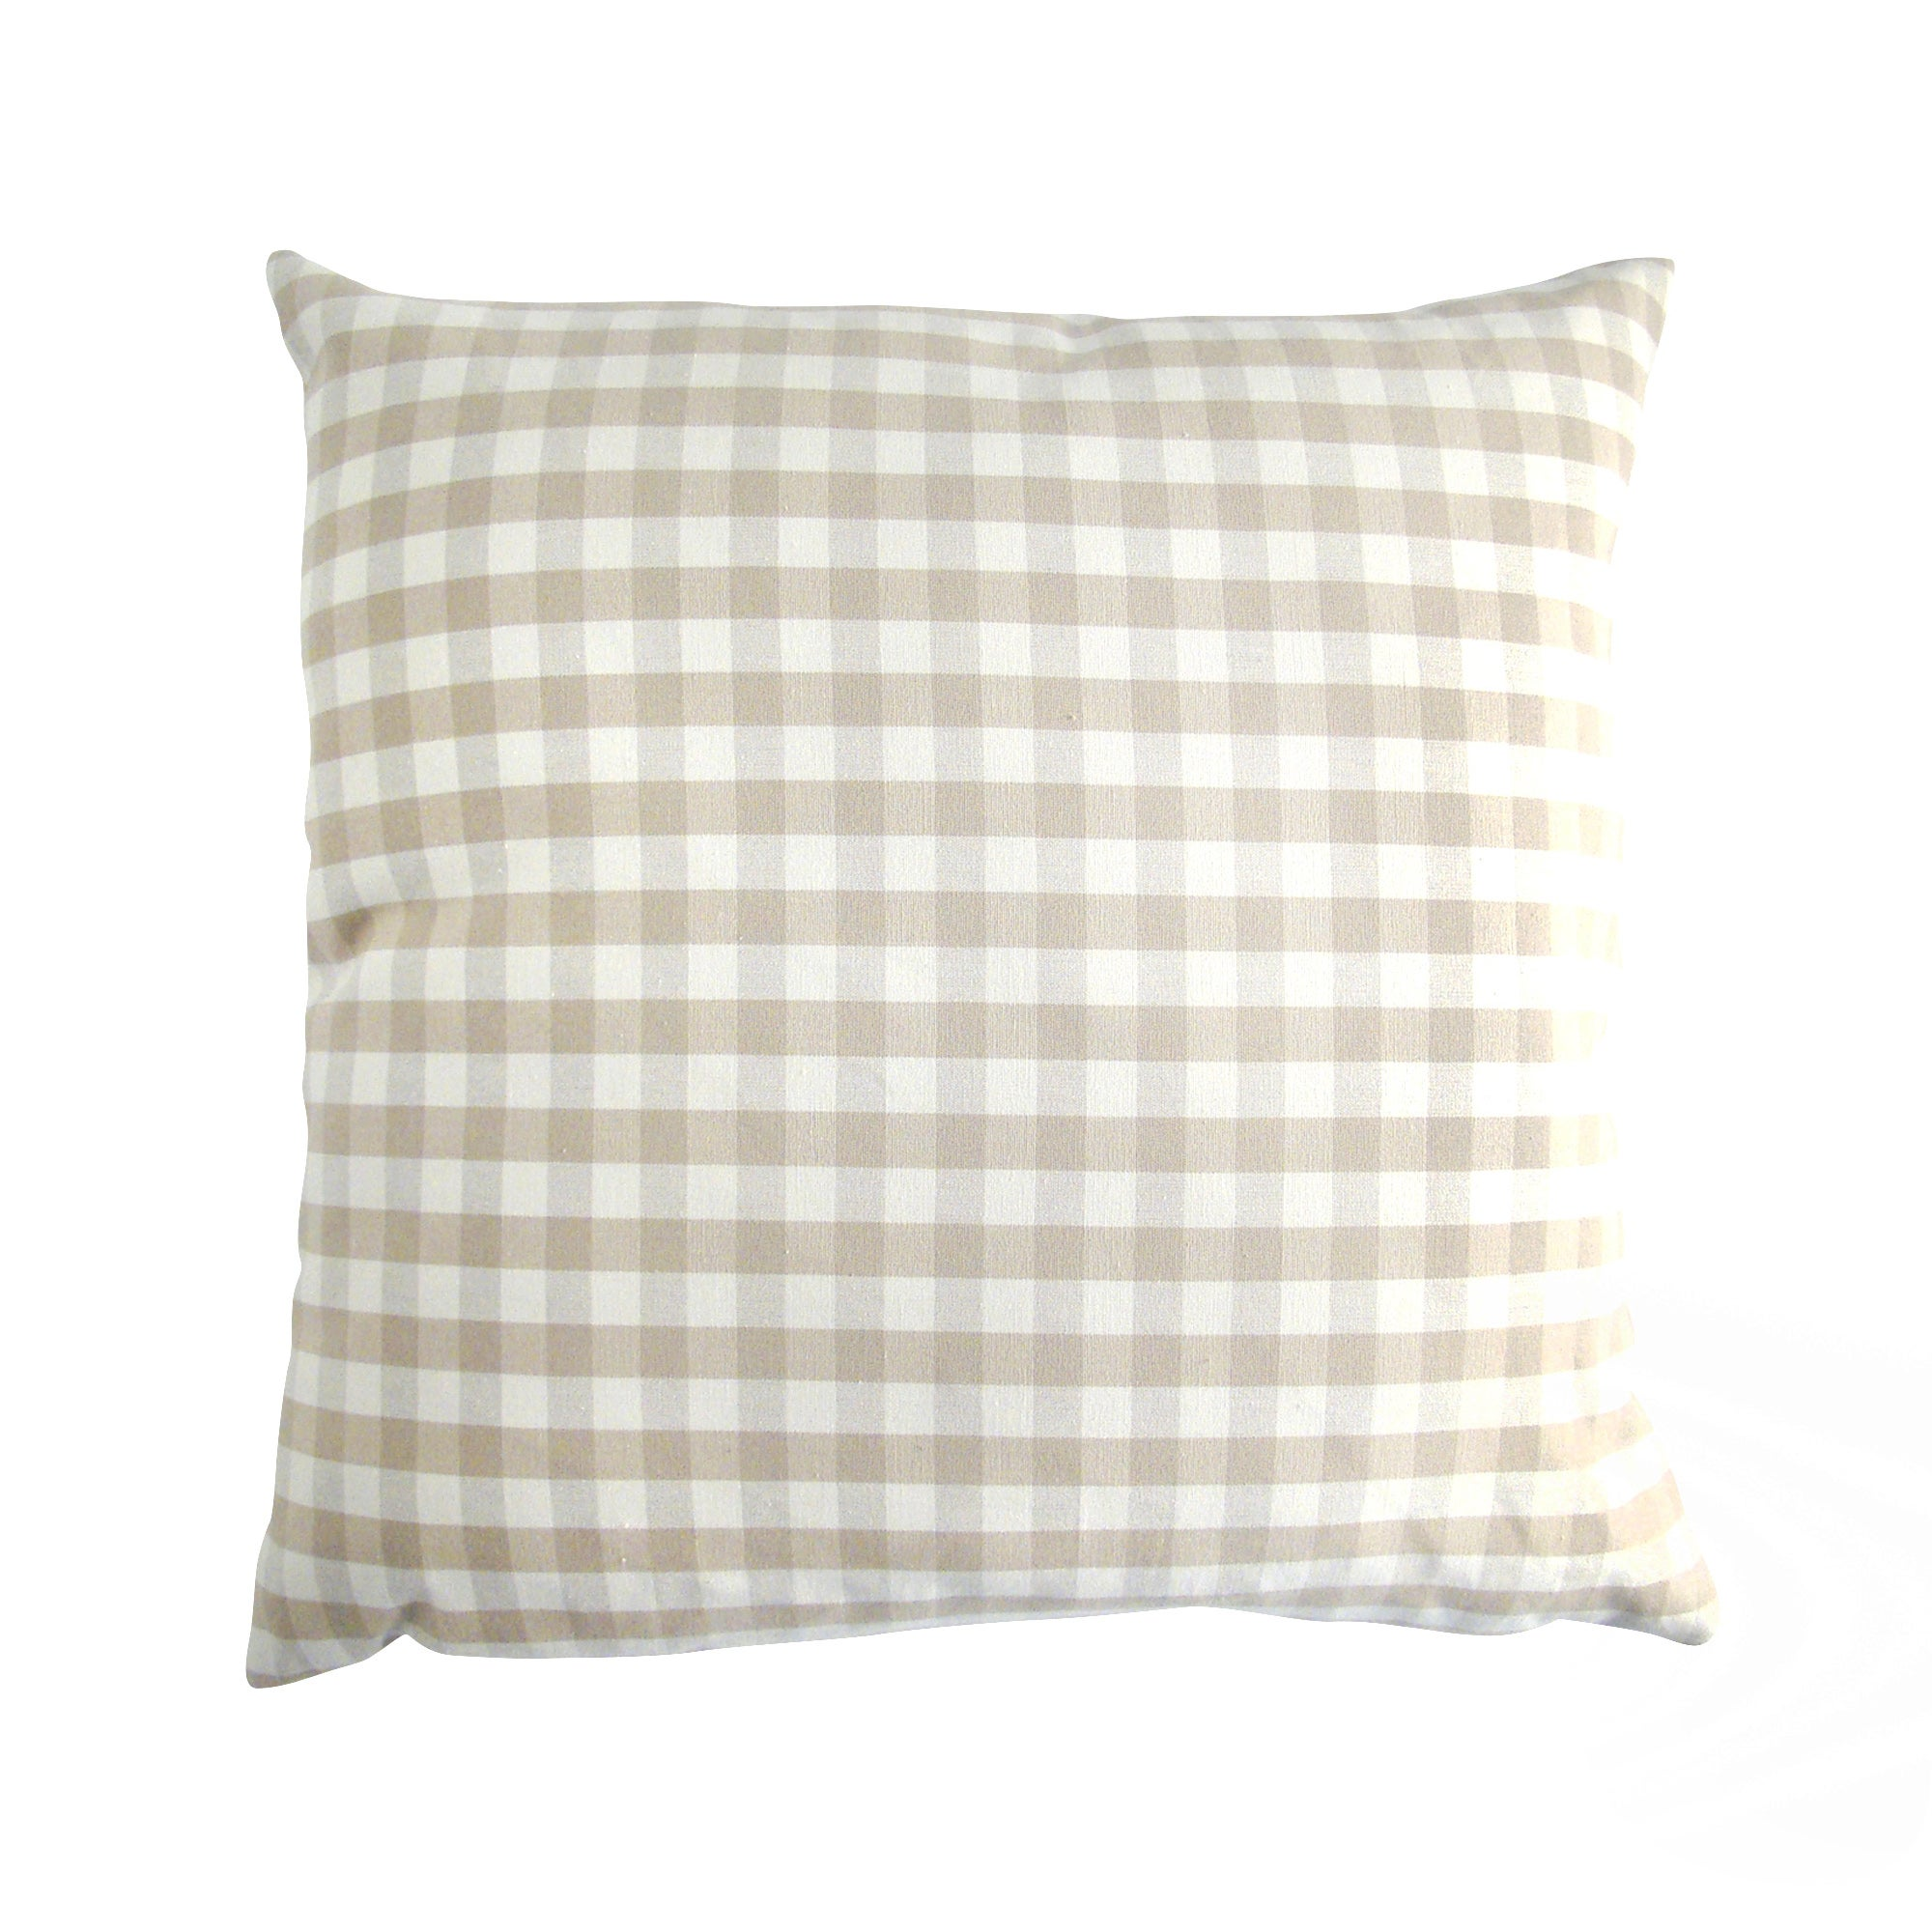 Coniston Cushion Cover